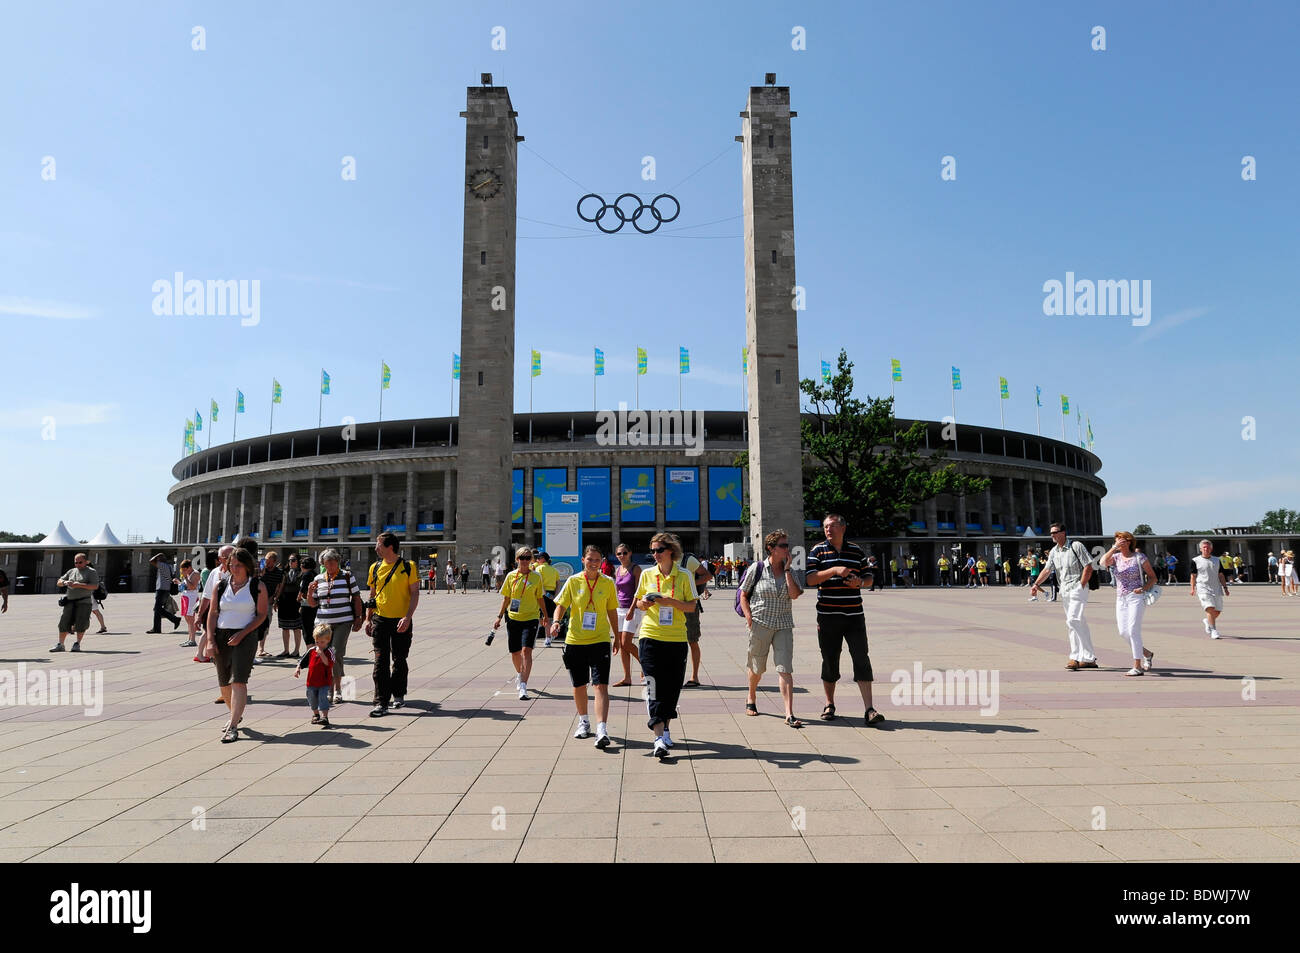 Olympic Stadium, 12th IAAF World Championships in Athletics 2009, the federal capital, Berlin, Germany, Europe - Stock Image